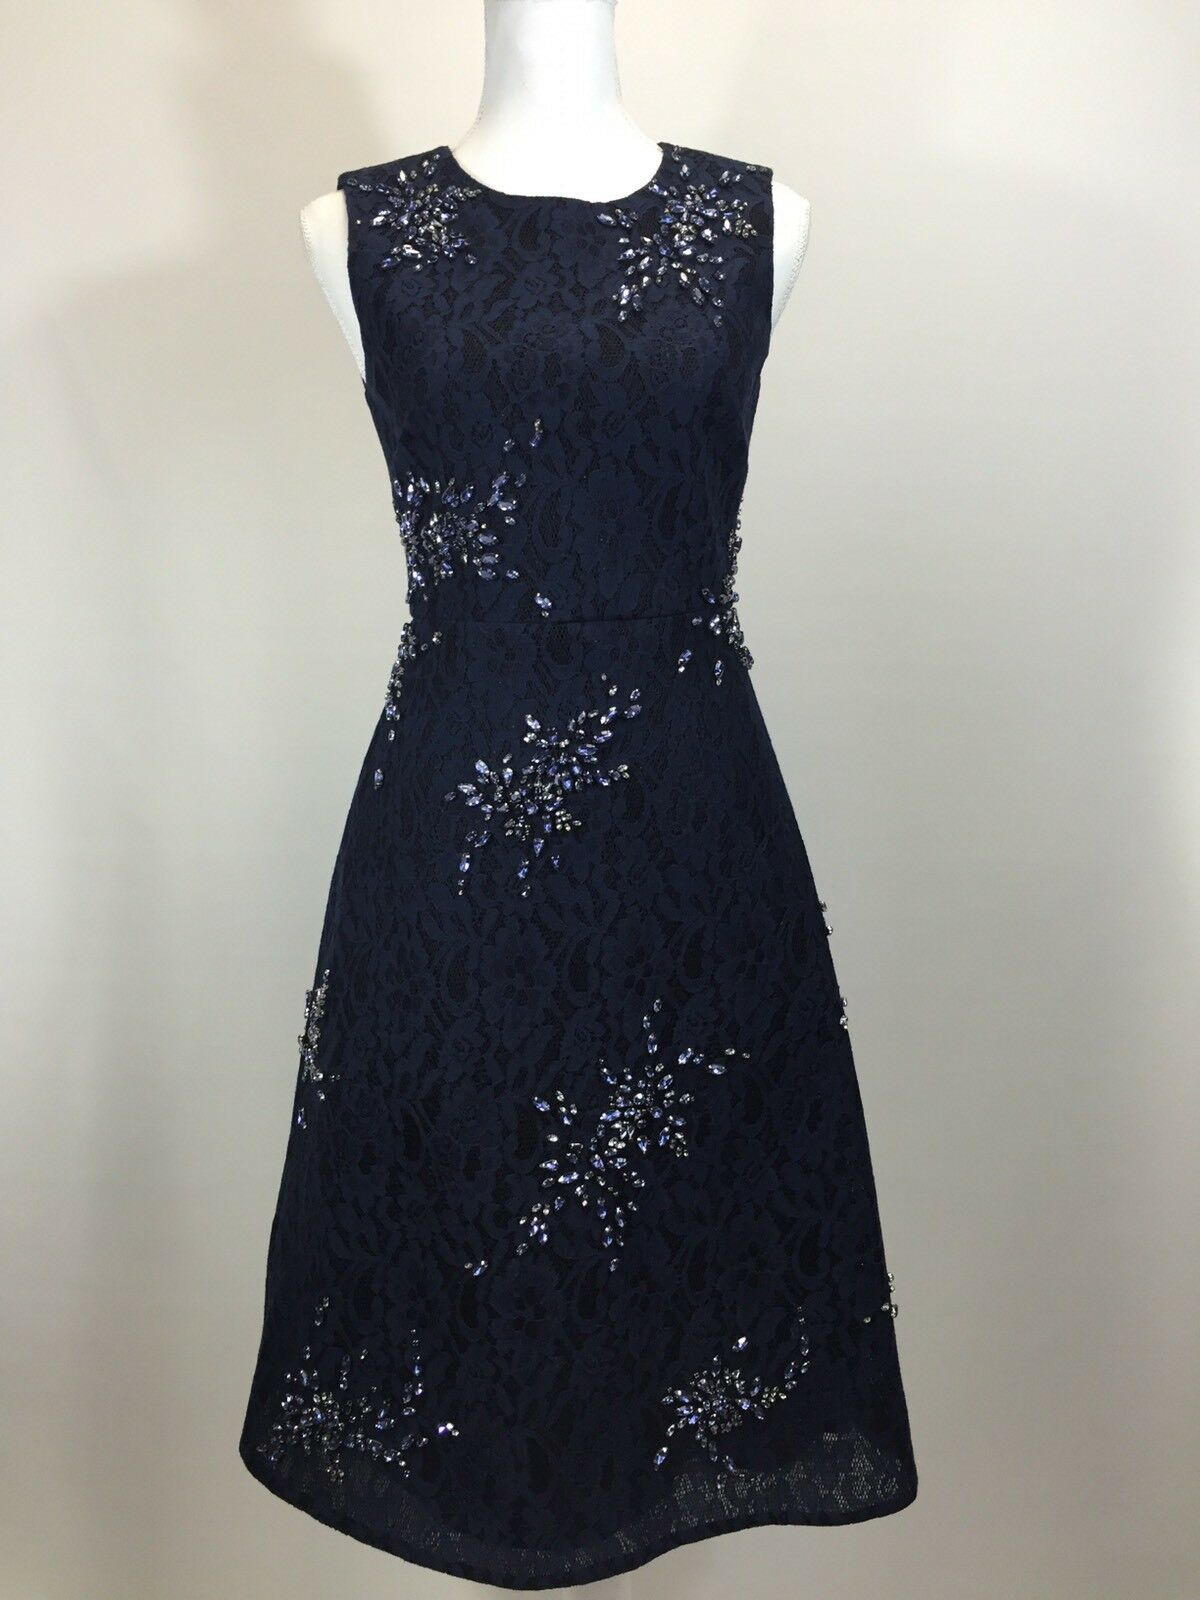 J.CREW COLLECTION  ADELE JEWELED LACE DRESS 0 00 NAVY WEDDING FORMAL SAMPLE